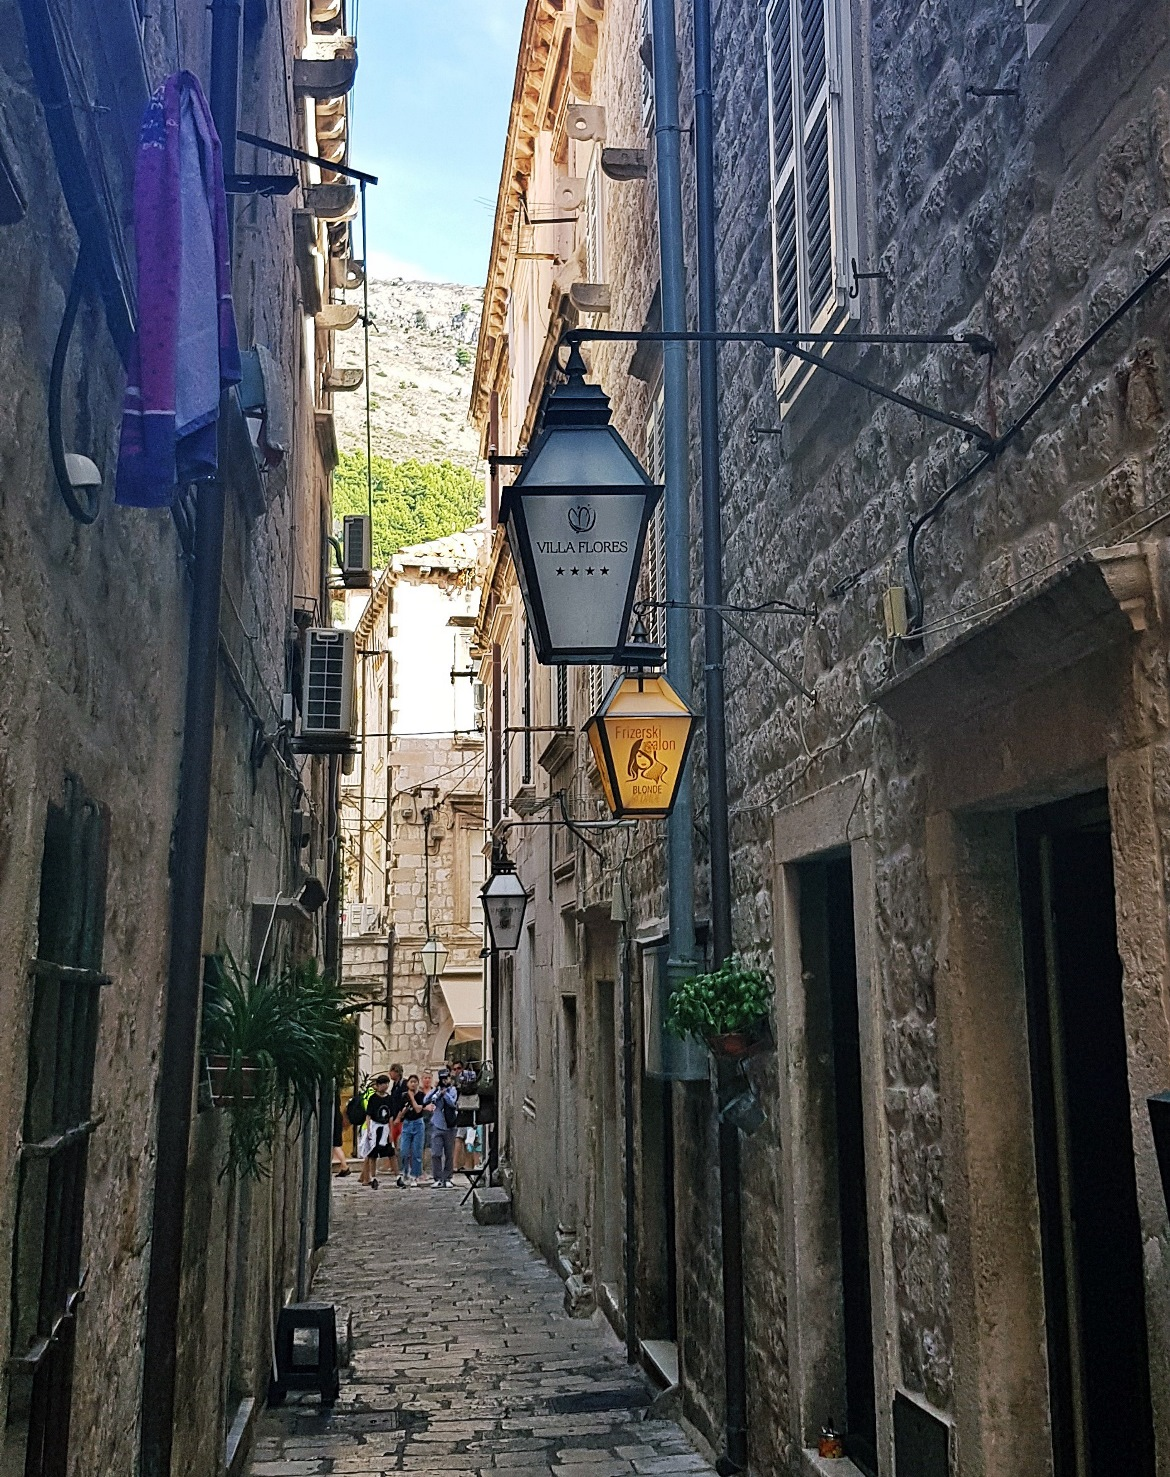 Old Town street - Sightseeing in Dubrovnik, Croatia - Top Travel Tips by BeckyBecky Blogs